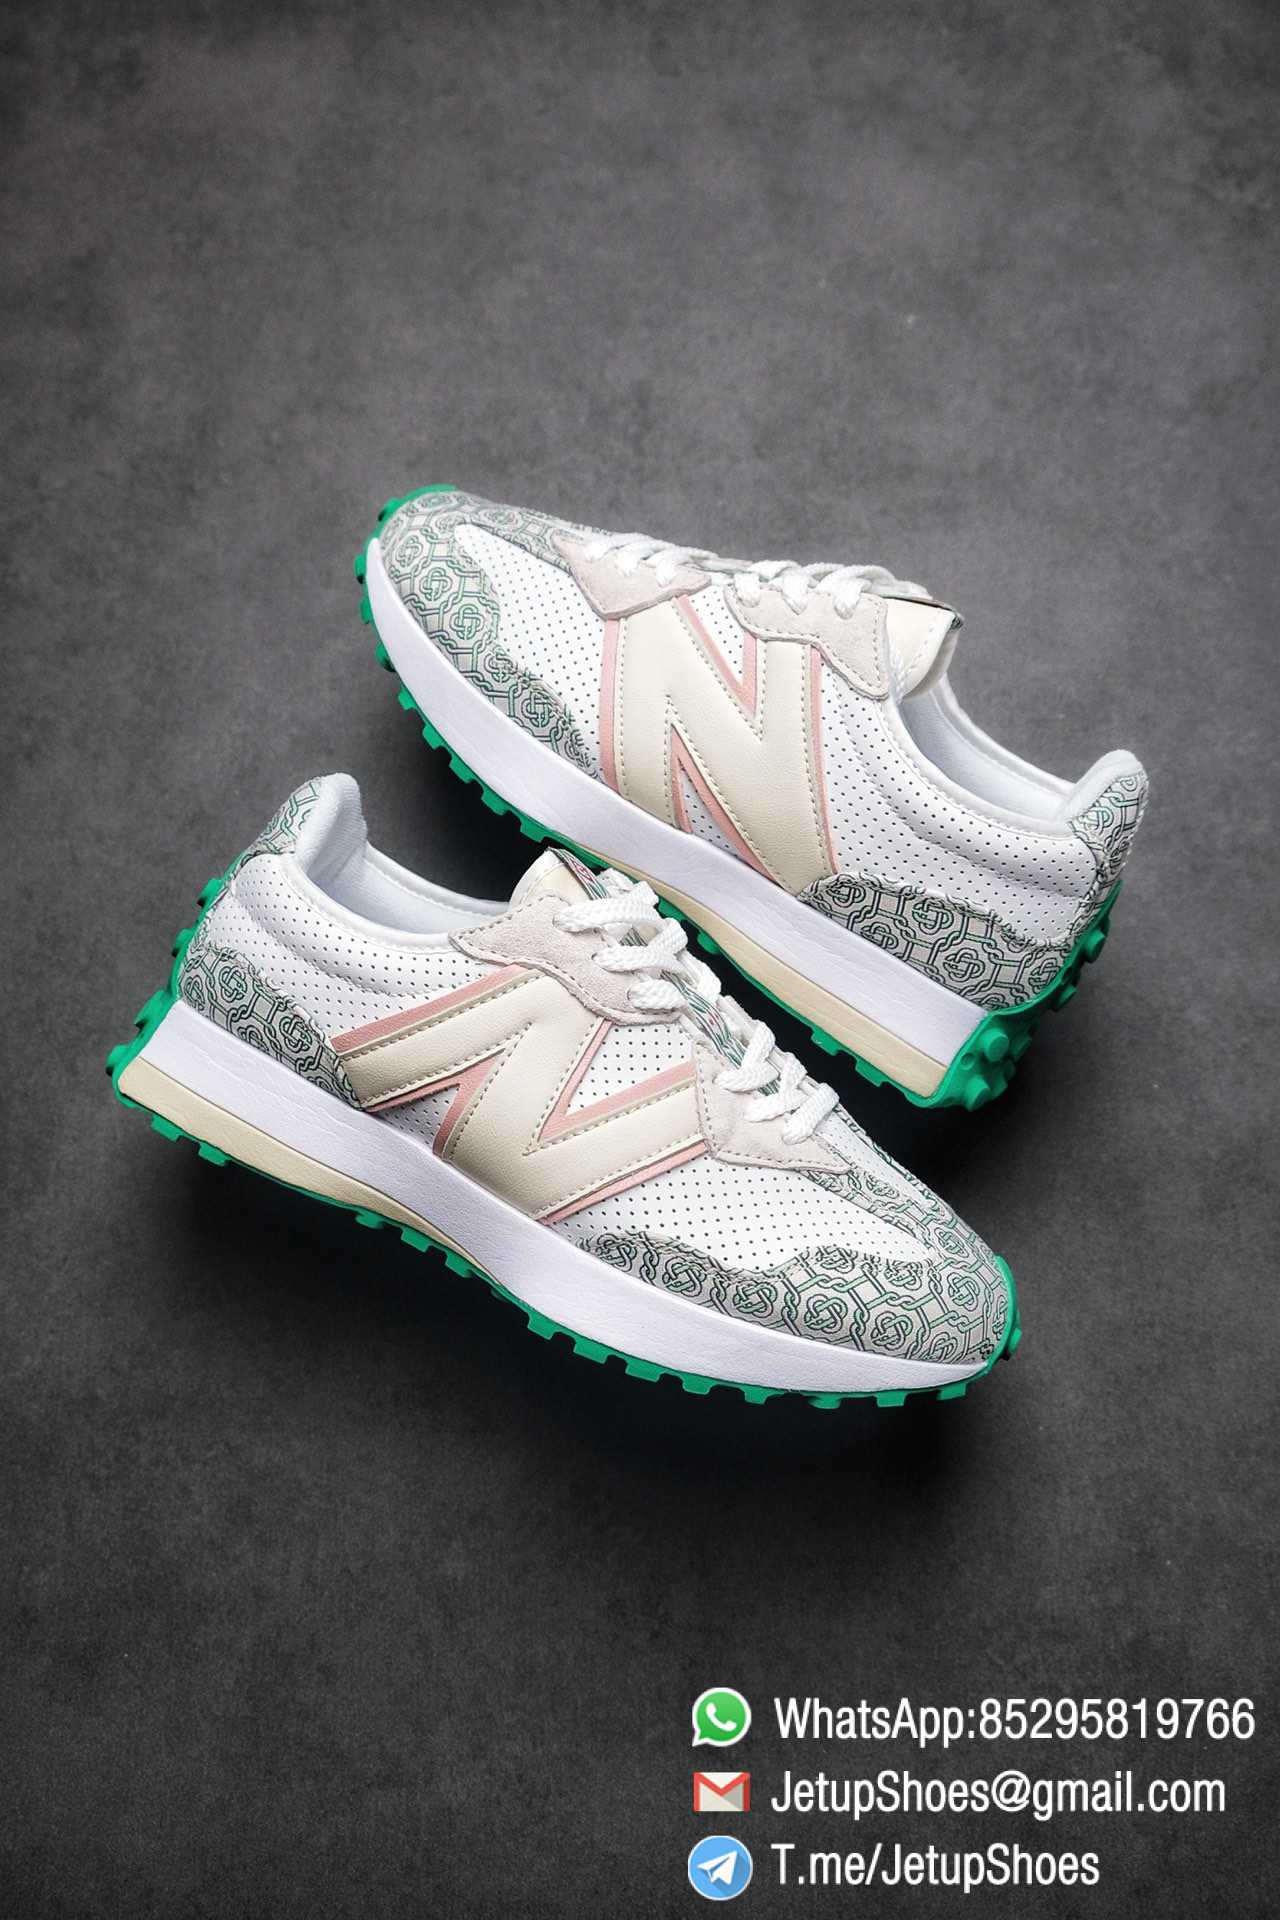 Replica Sneakers New Balance 327 Casablanca x 327 Munsell White Green Retro Running Shoes SKU MS327CAB Best RepSneakers 01